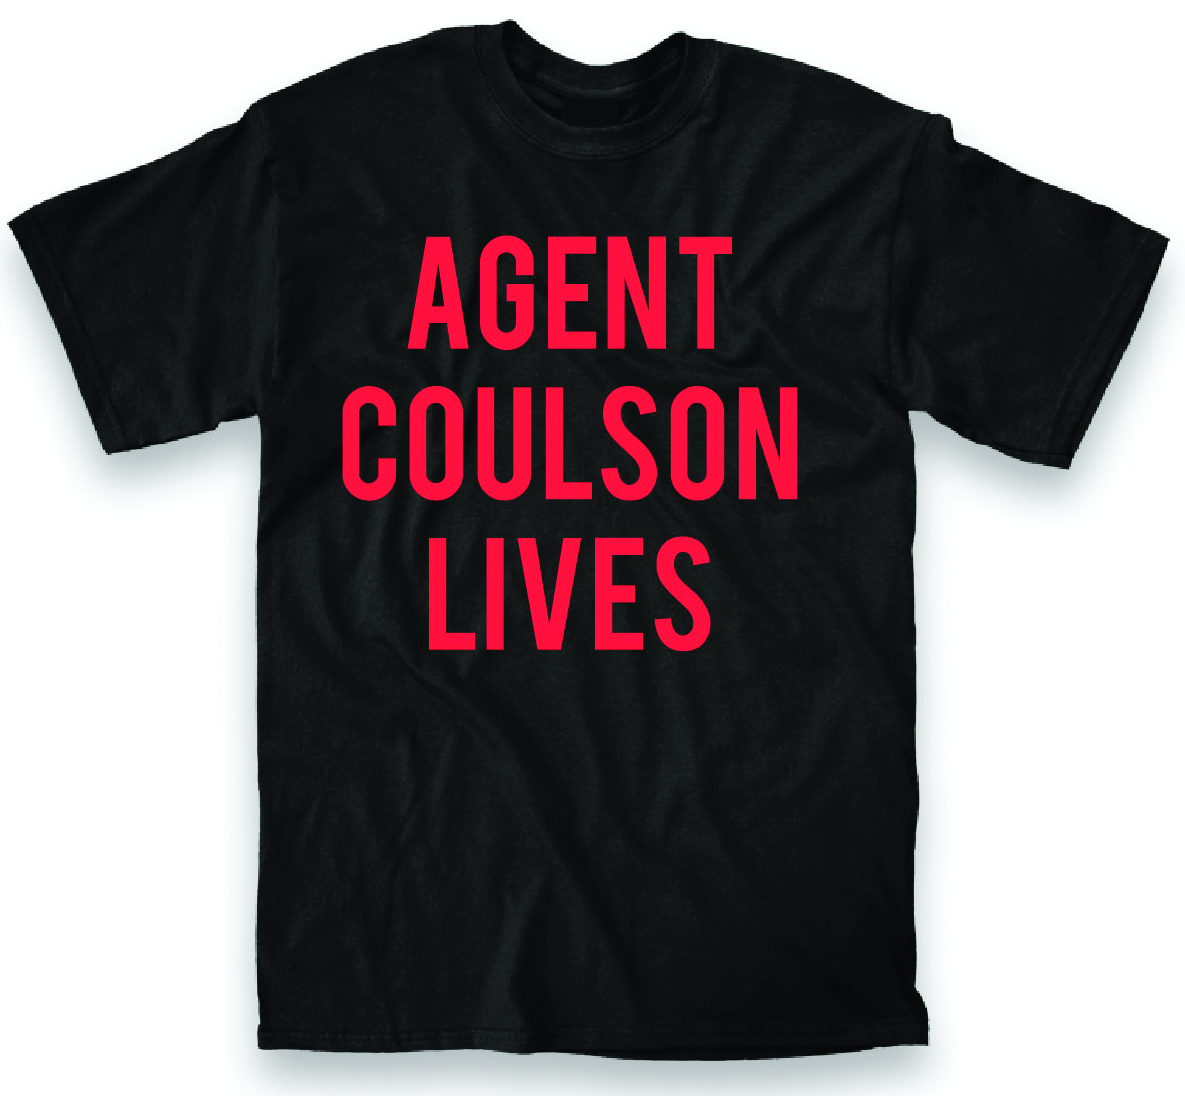 SHIELD COULSON LIVES BLK T/S LG